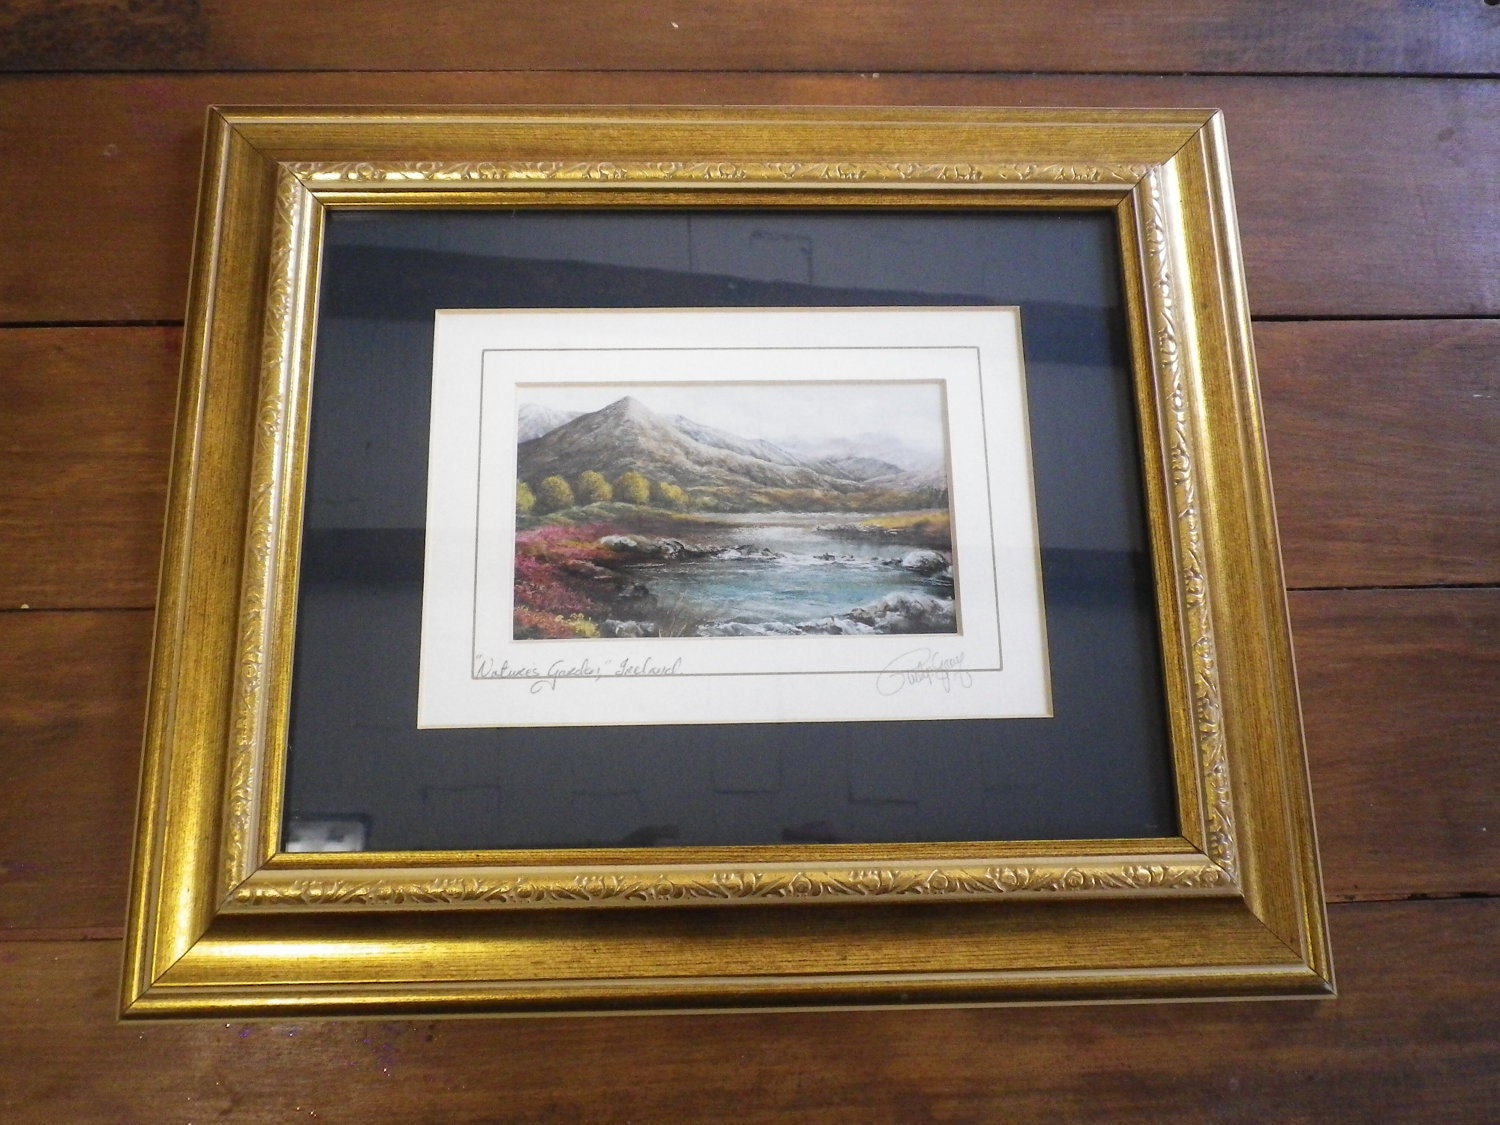 Art Signed Print Philip Gray Vintage Landscape Wooden Framed